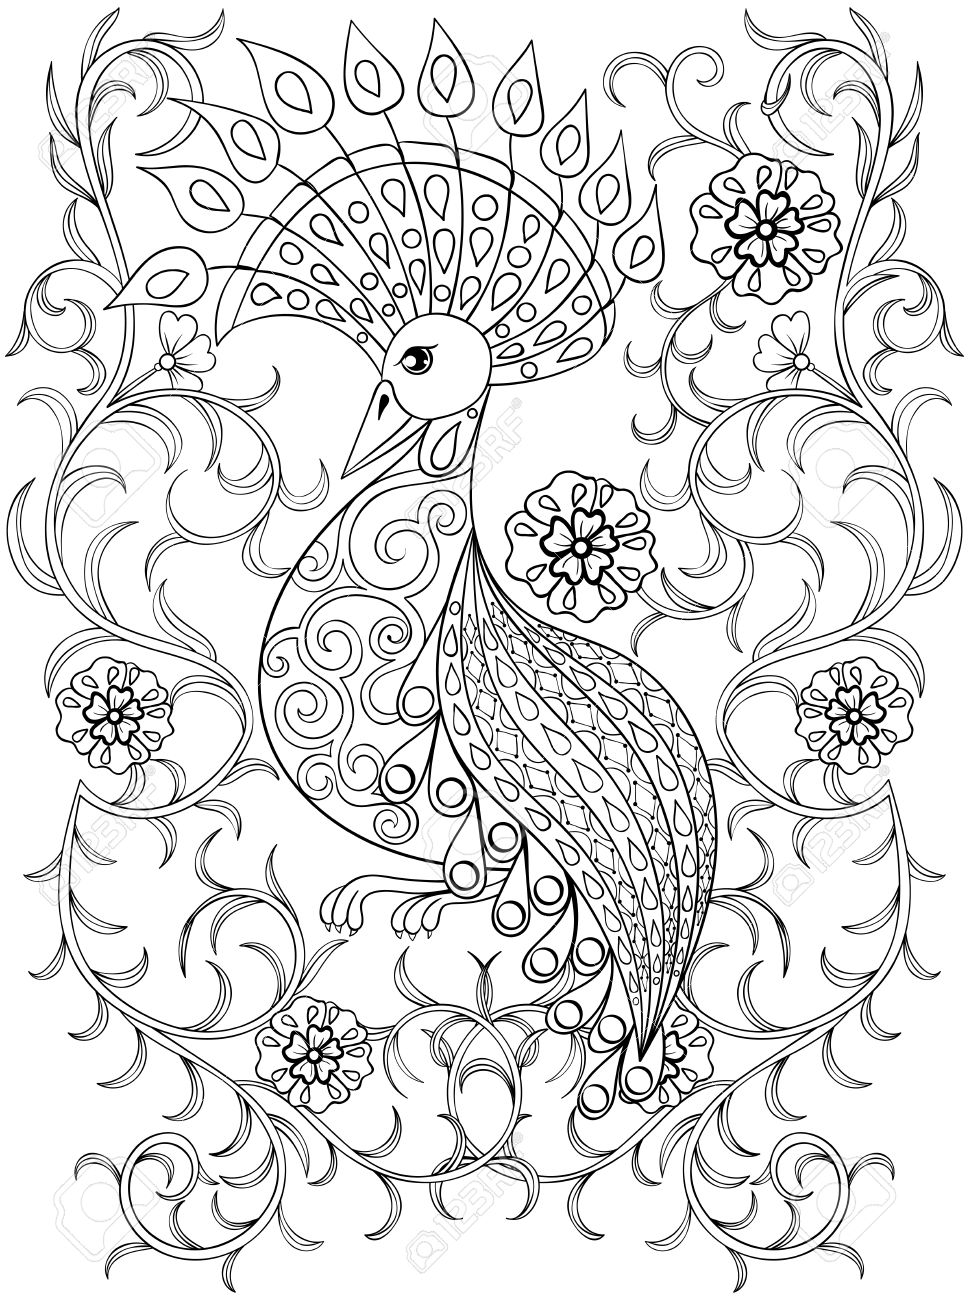 coloring page with bird in flowers zentangle illustartion bird